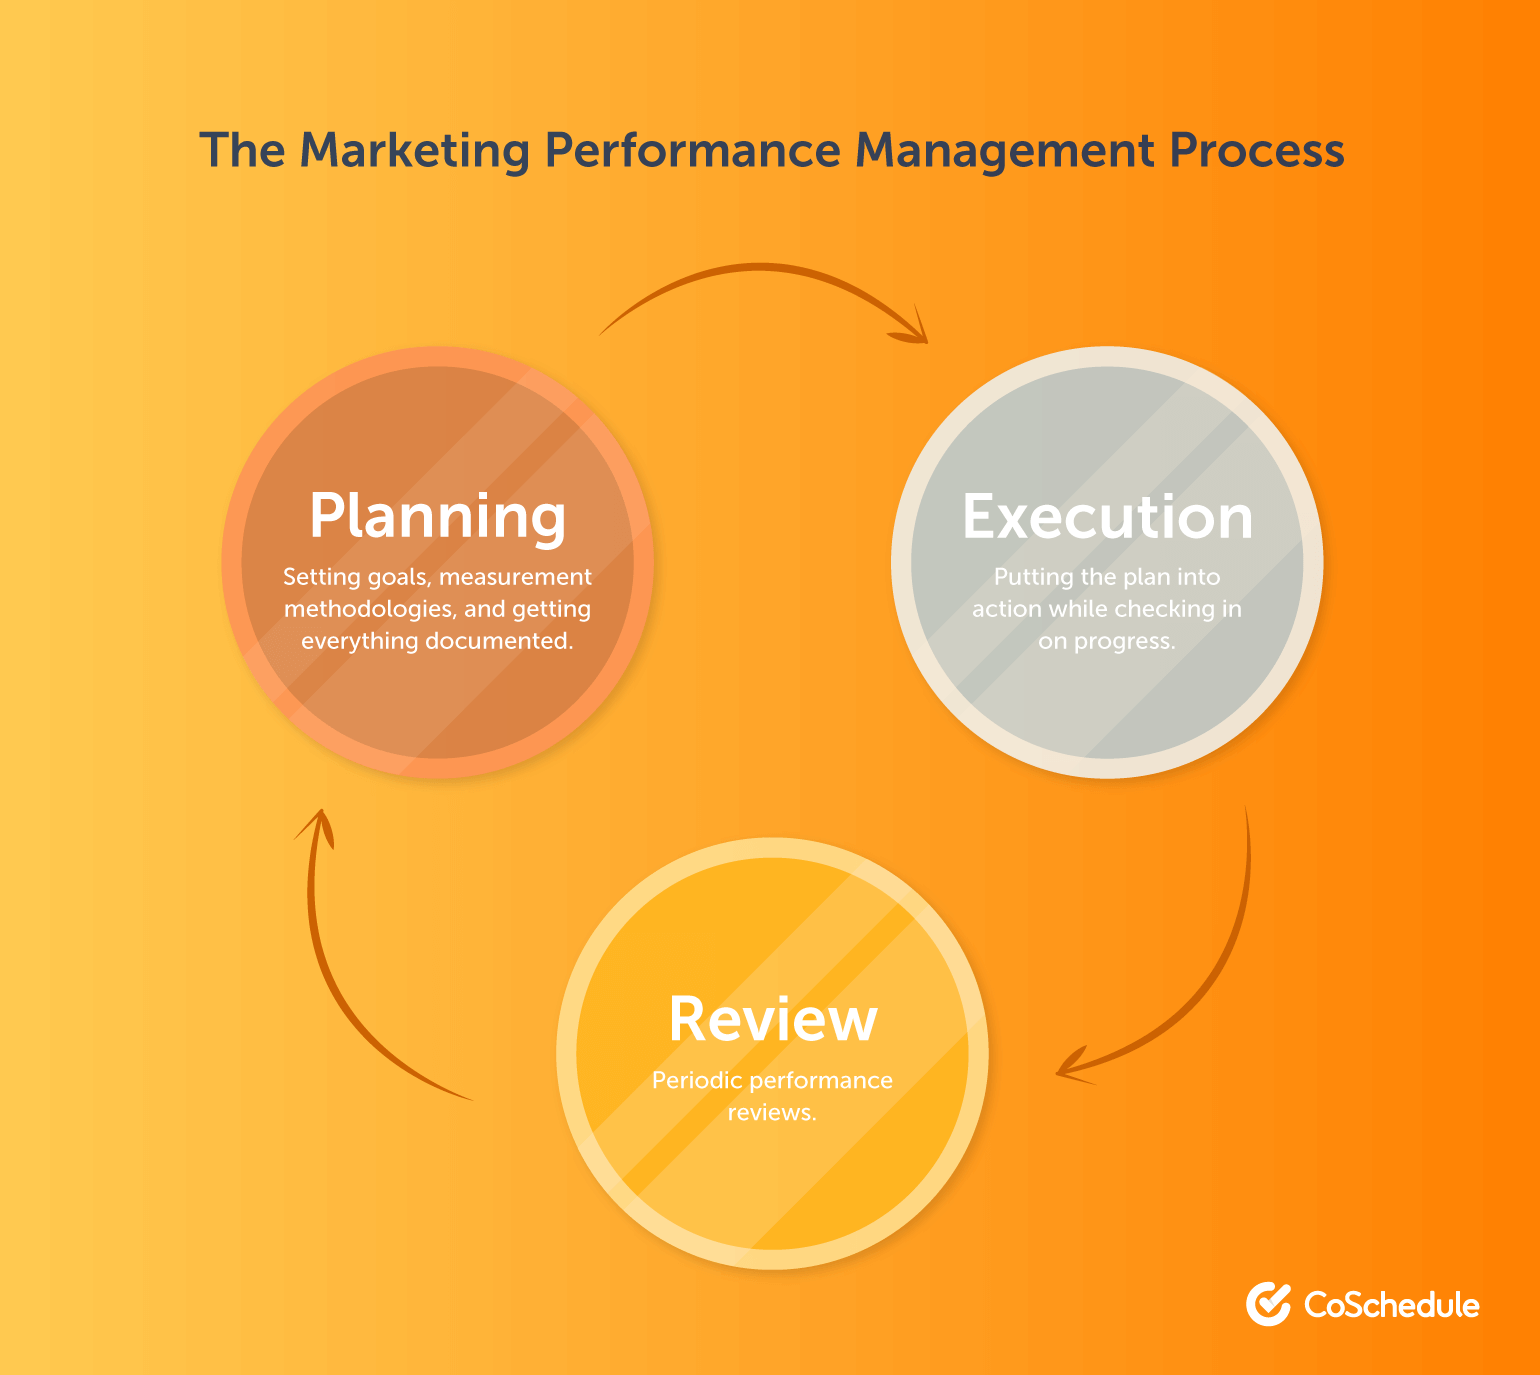 The Best Way To Plan A Marketing Performance Management Process